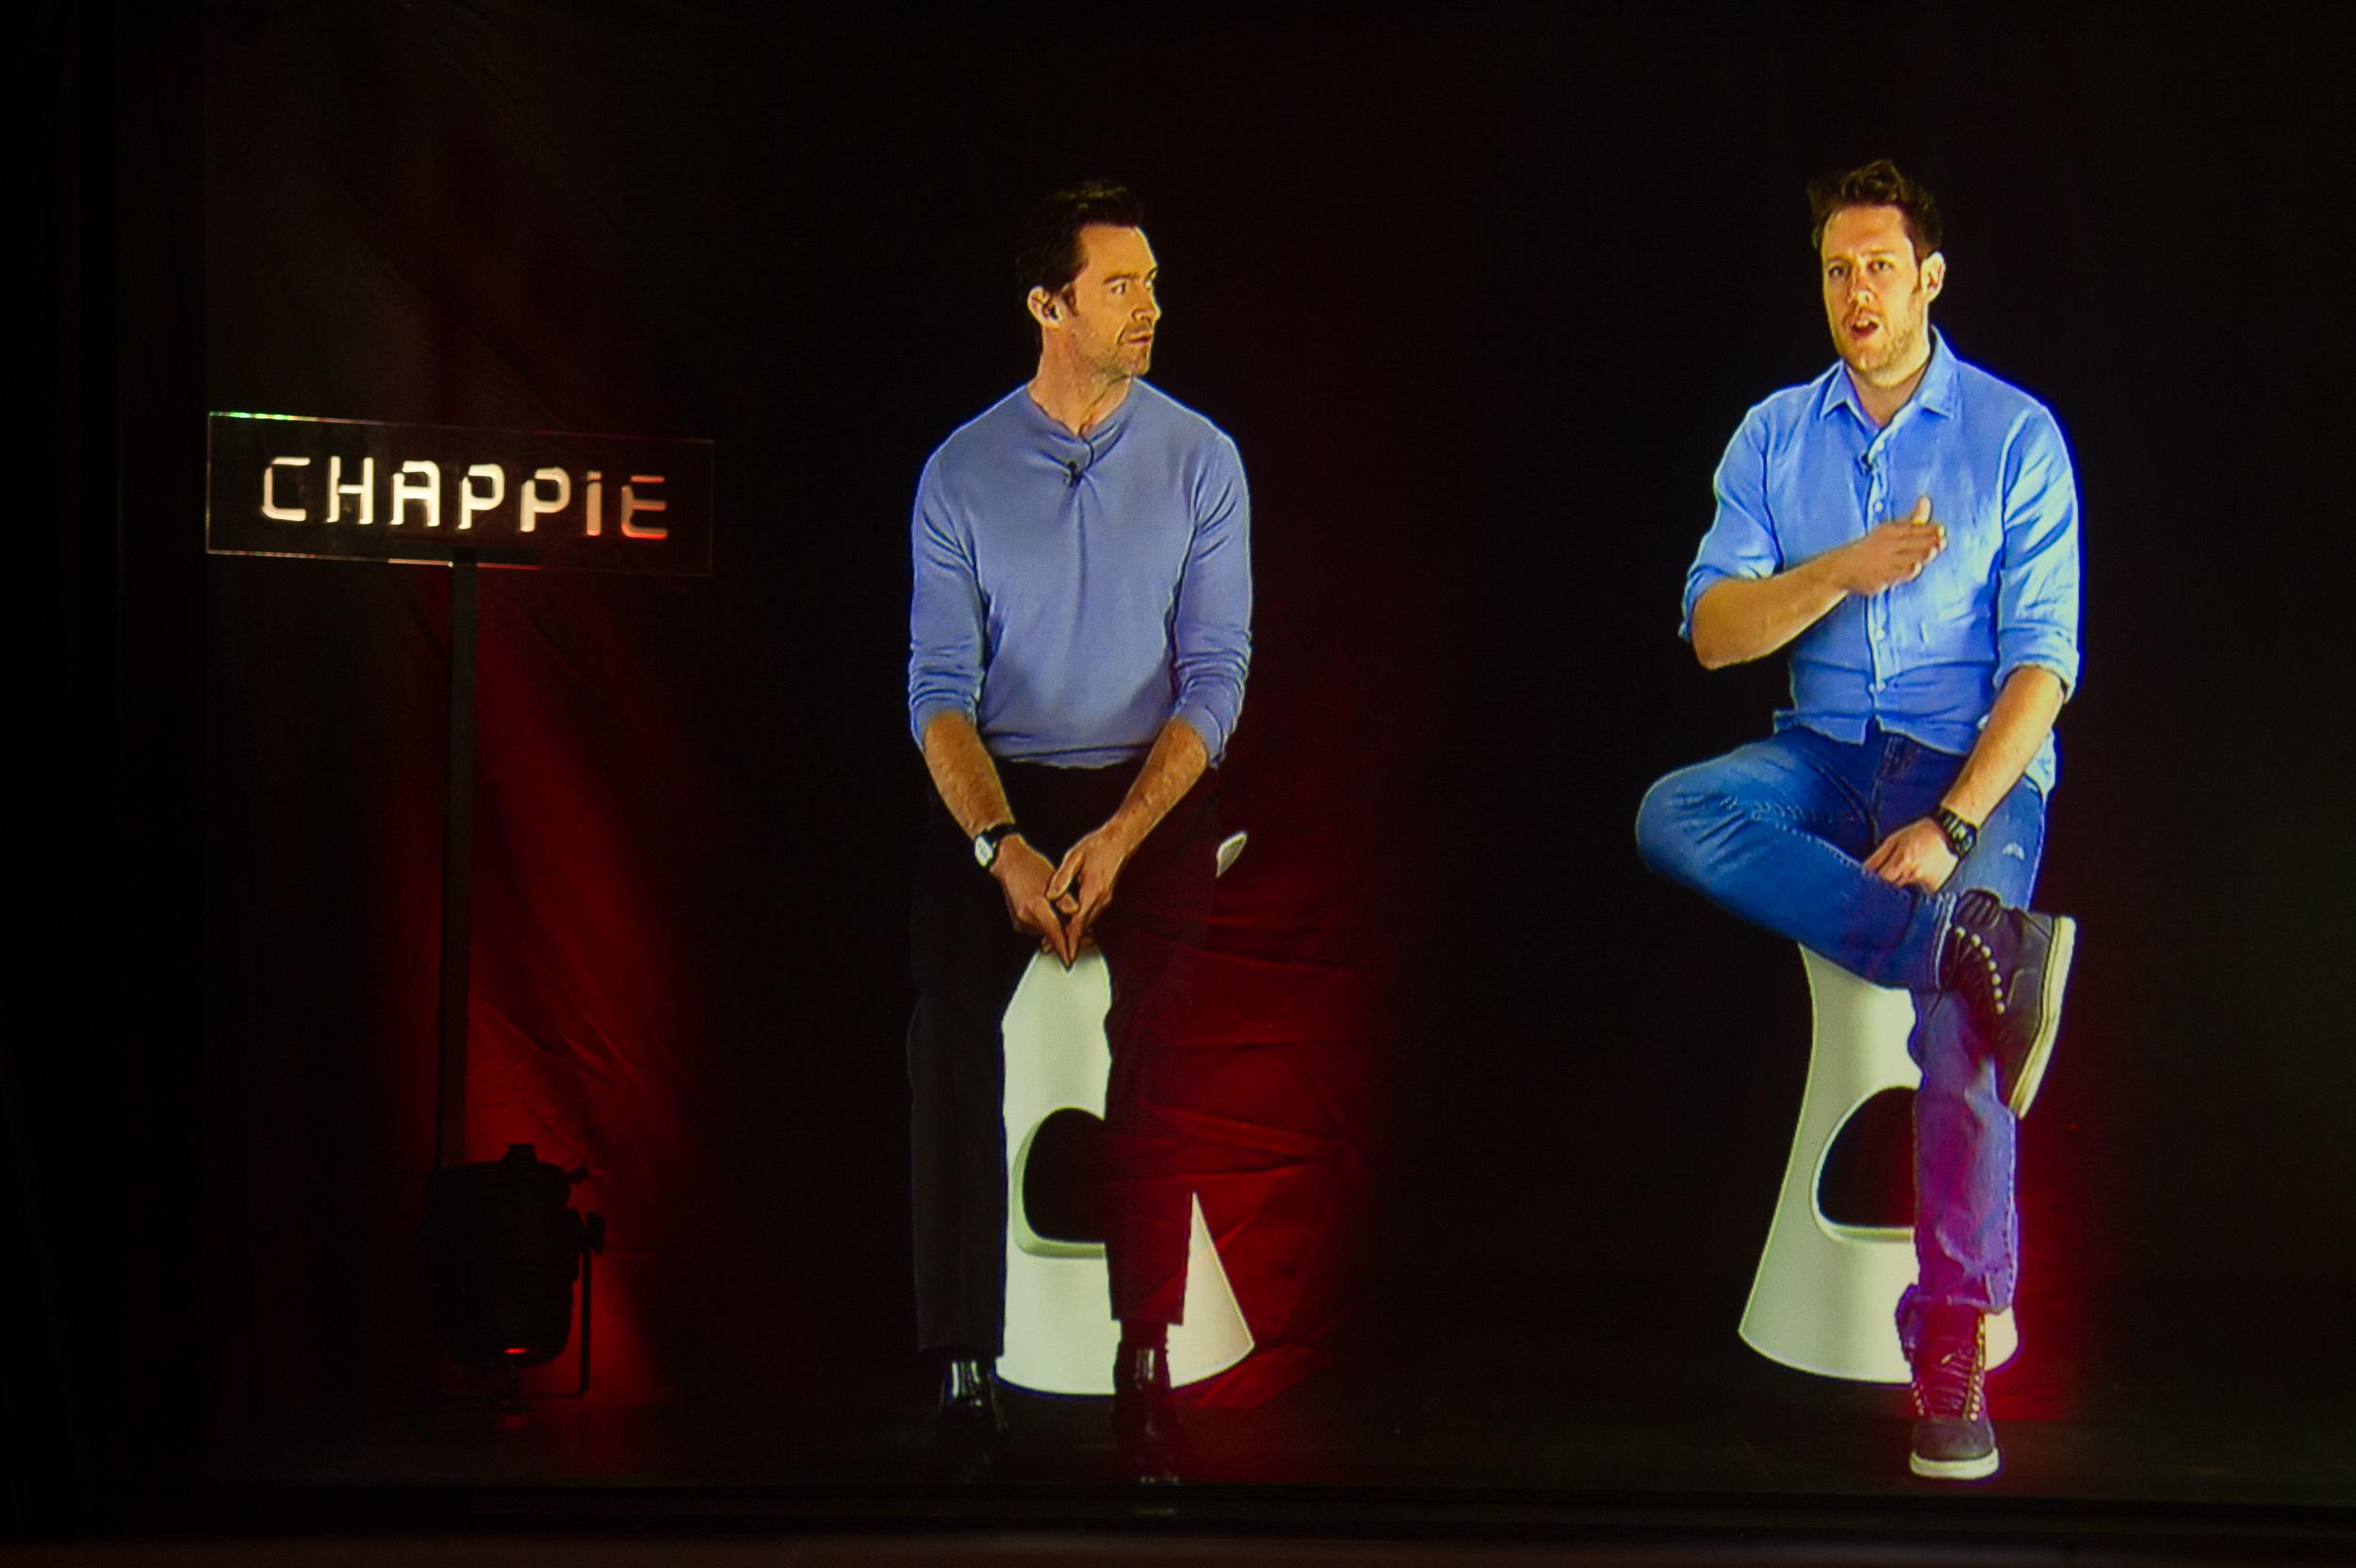 Hugh Jackman, Neill Blomkamp Talk 'Chappie' at Historical Hologram Press Conference